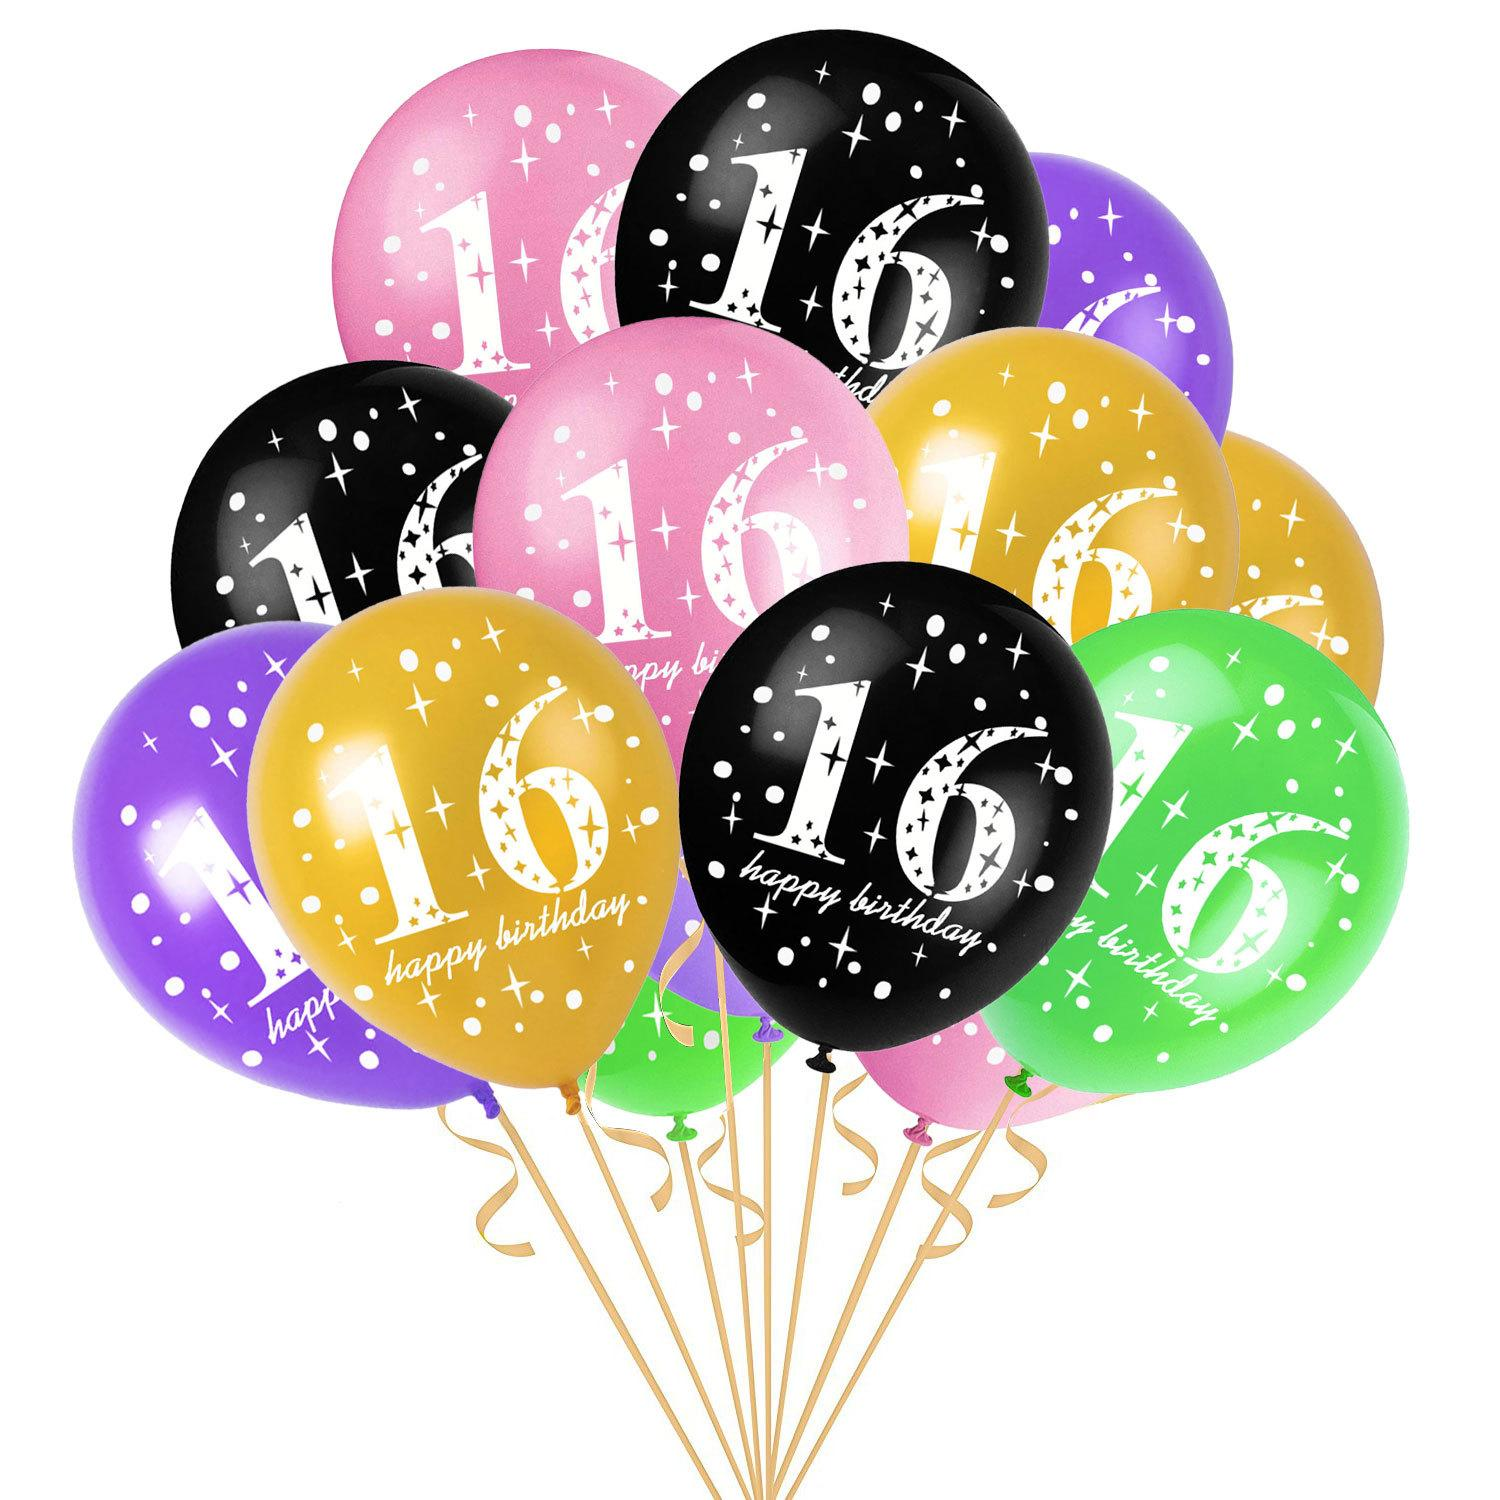 12 Inch 16 Years Old Birthday Balloons Latex Kids Girls Toys Wedding Party Decoration Gift AAA767 Decorations For A